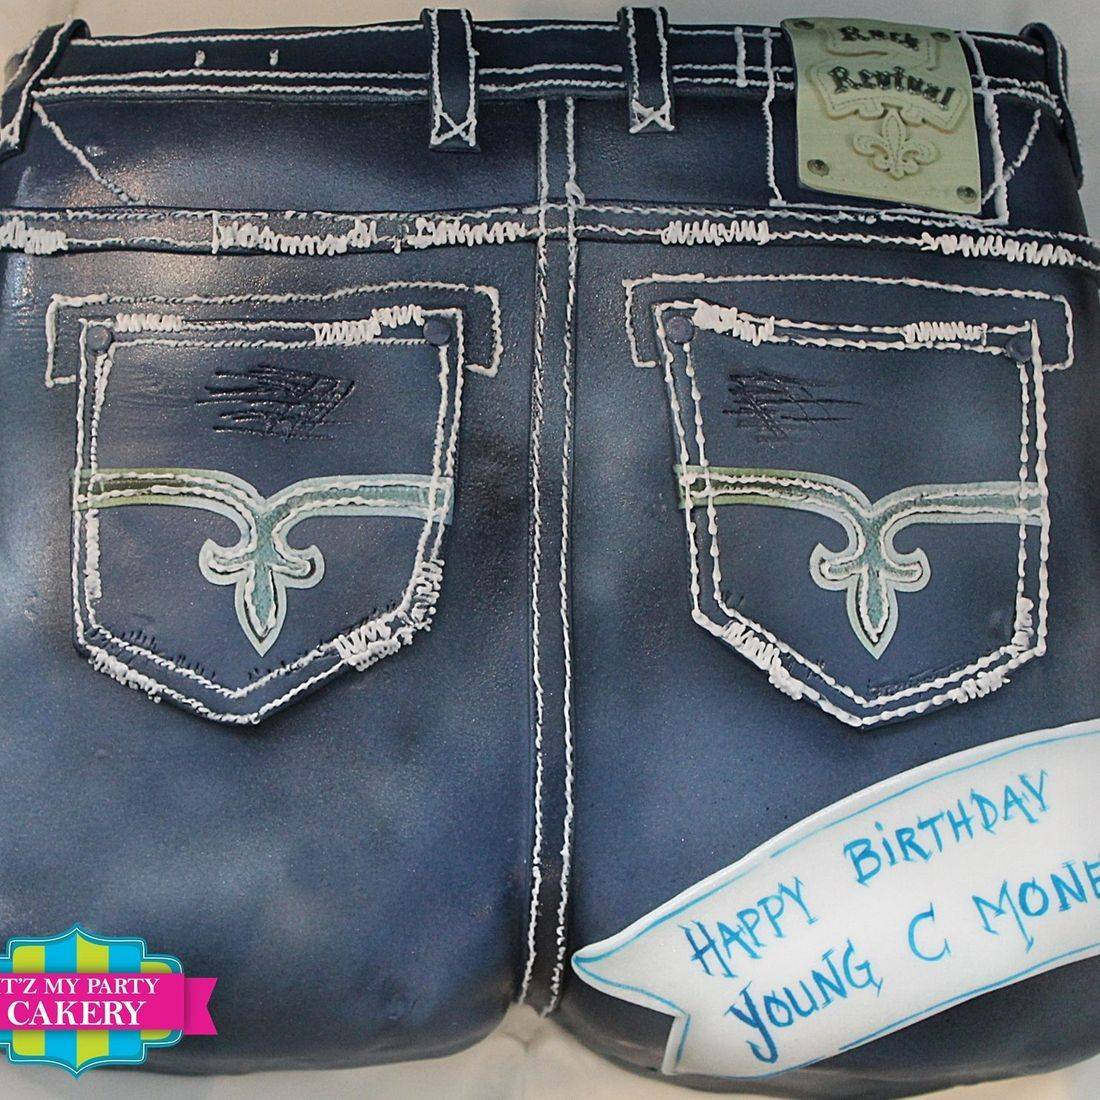 True Religion Jeans Carved Dimensional Cake Milwaukee